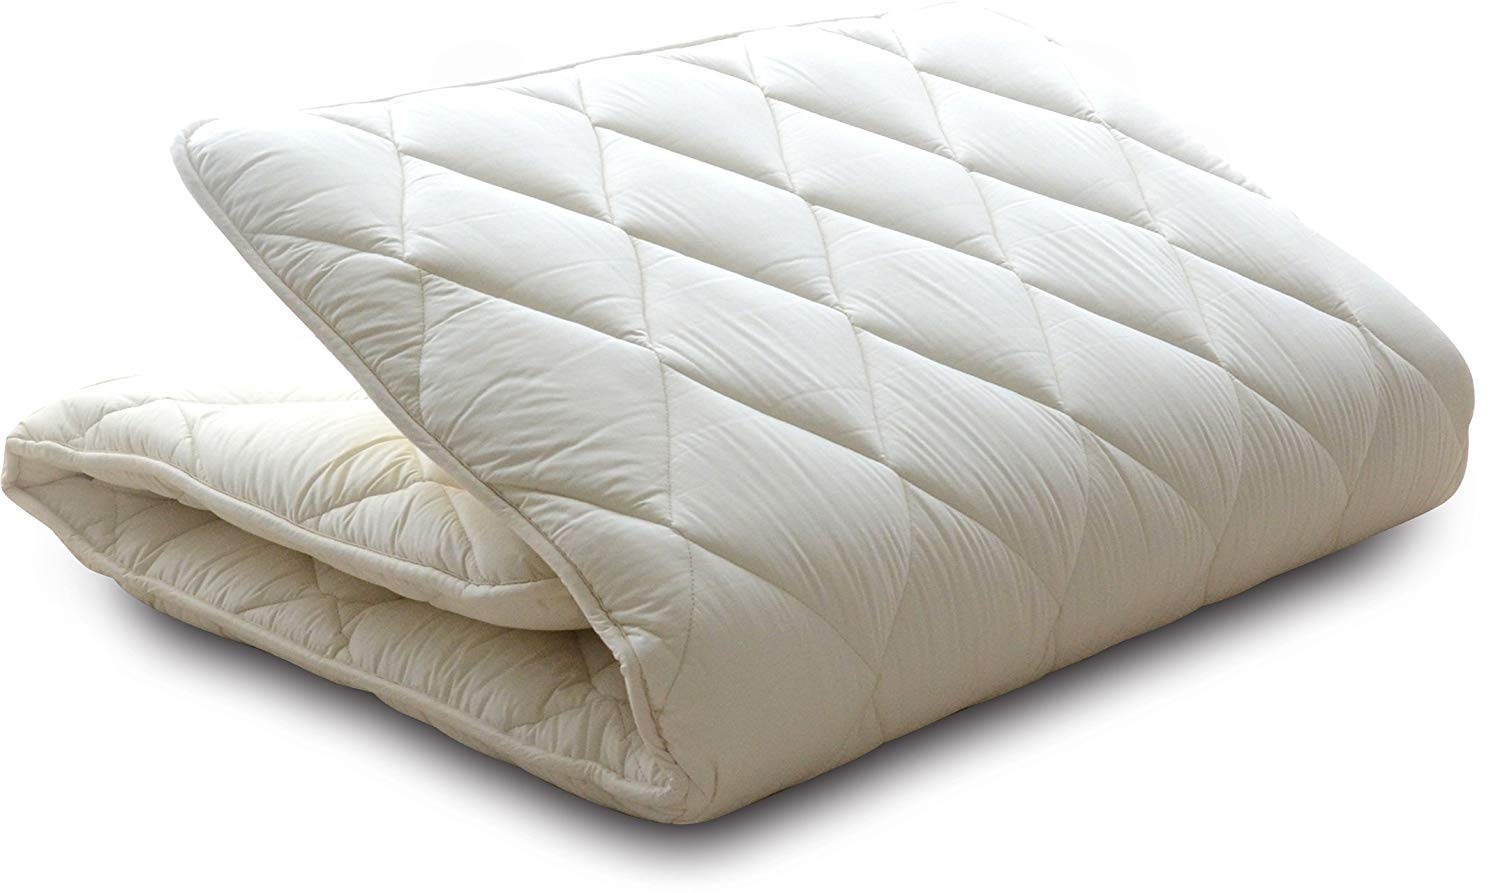 The Best Futon Mattress Brands And